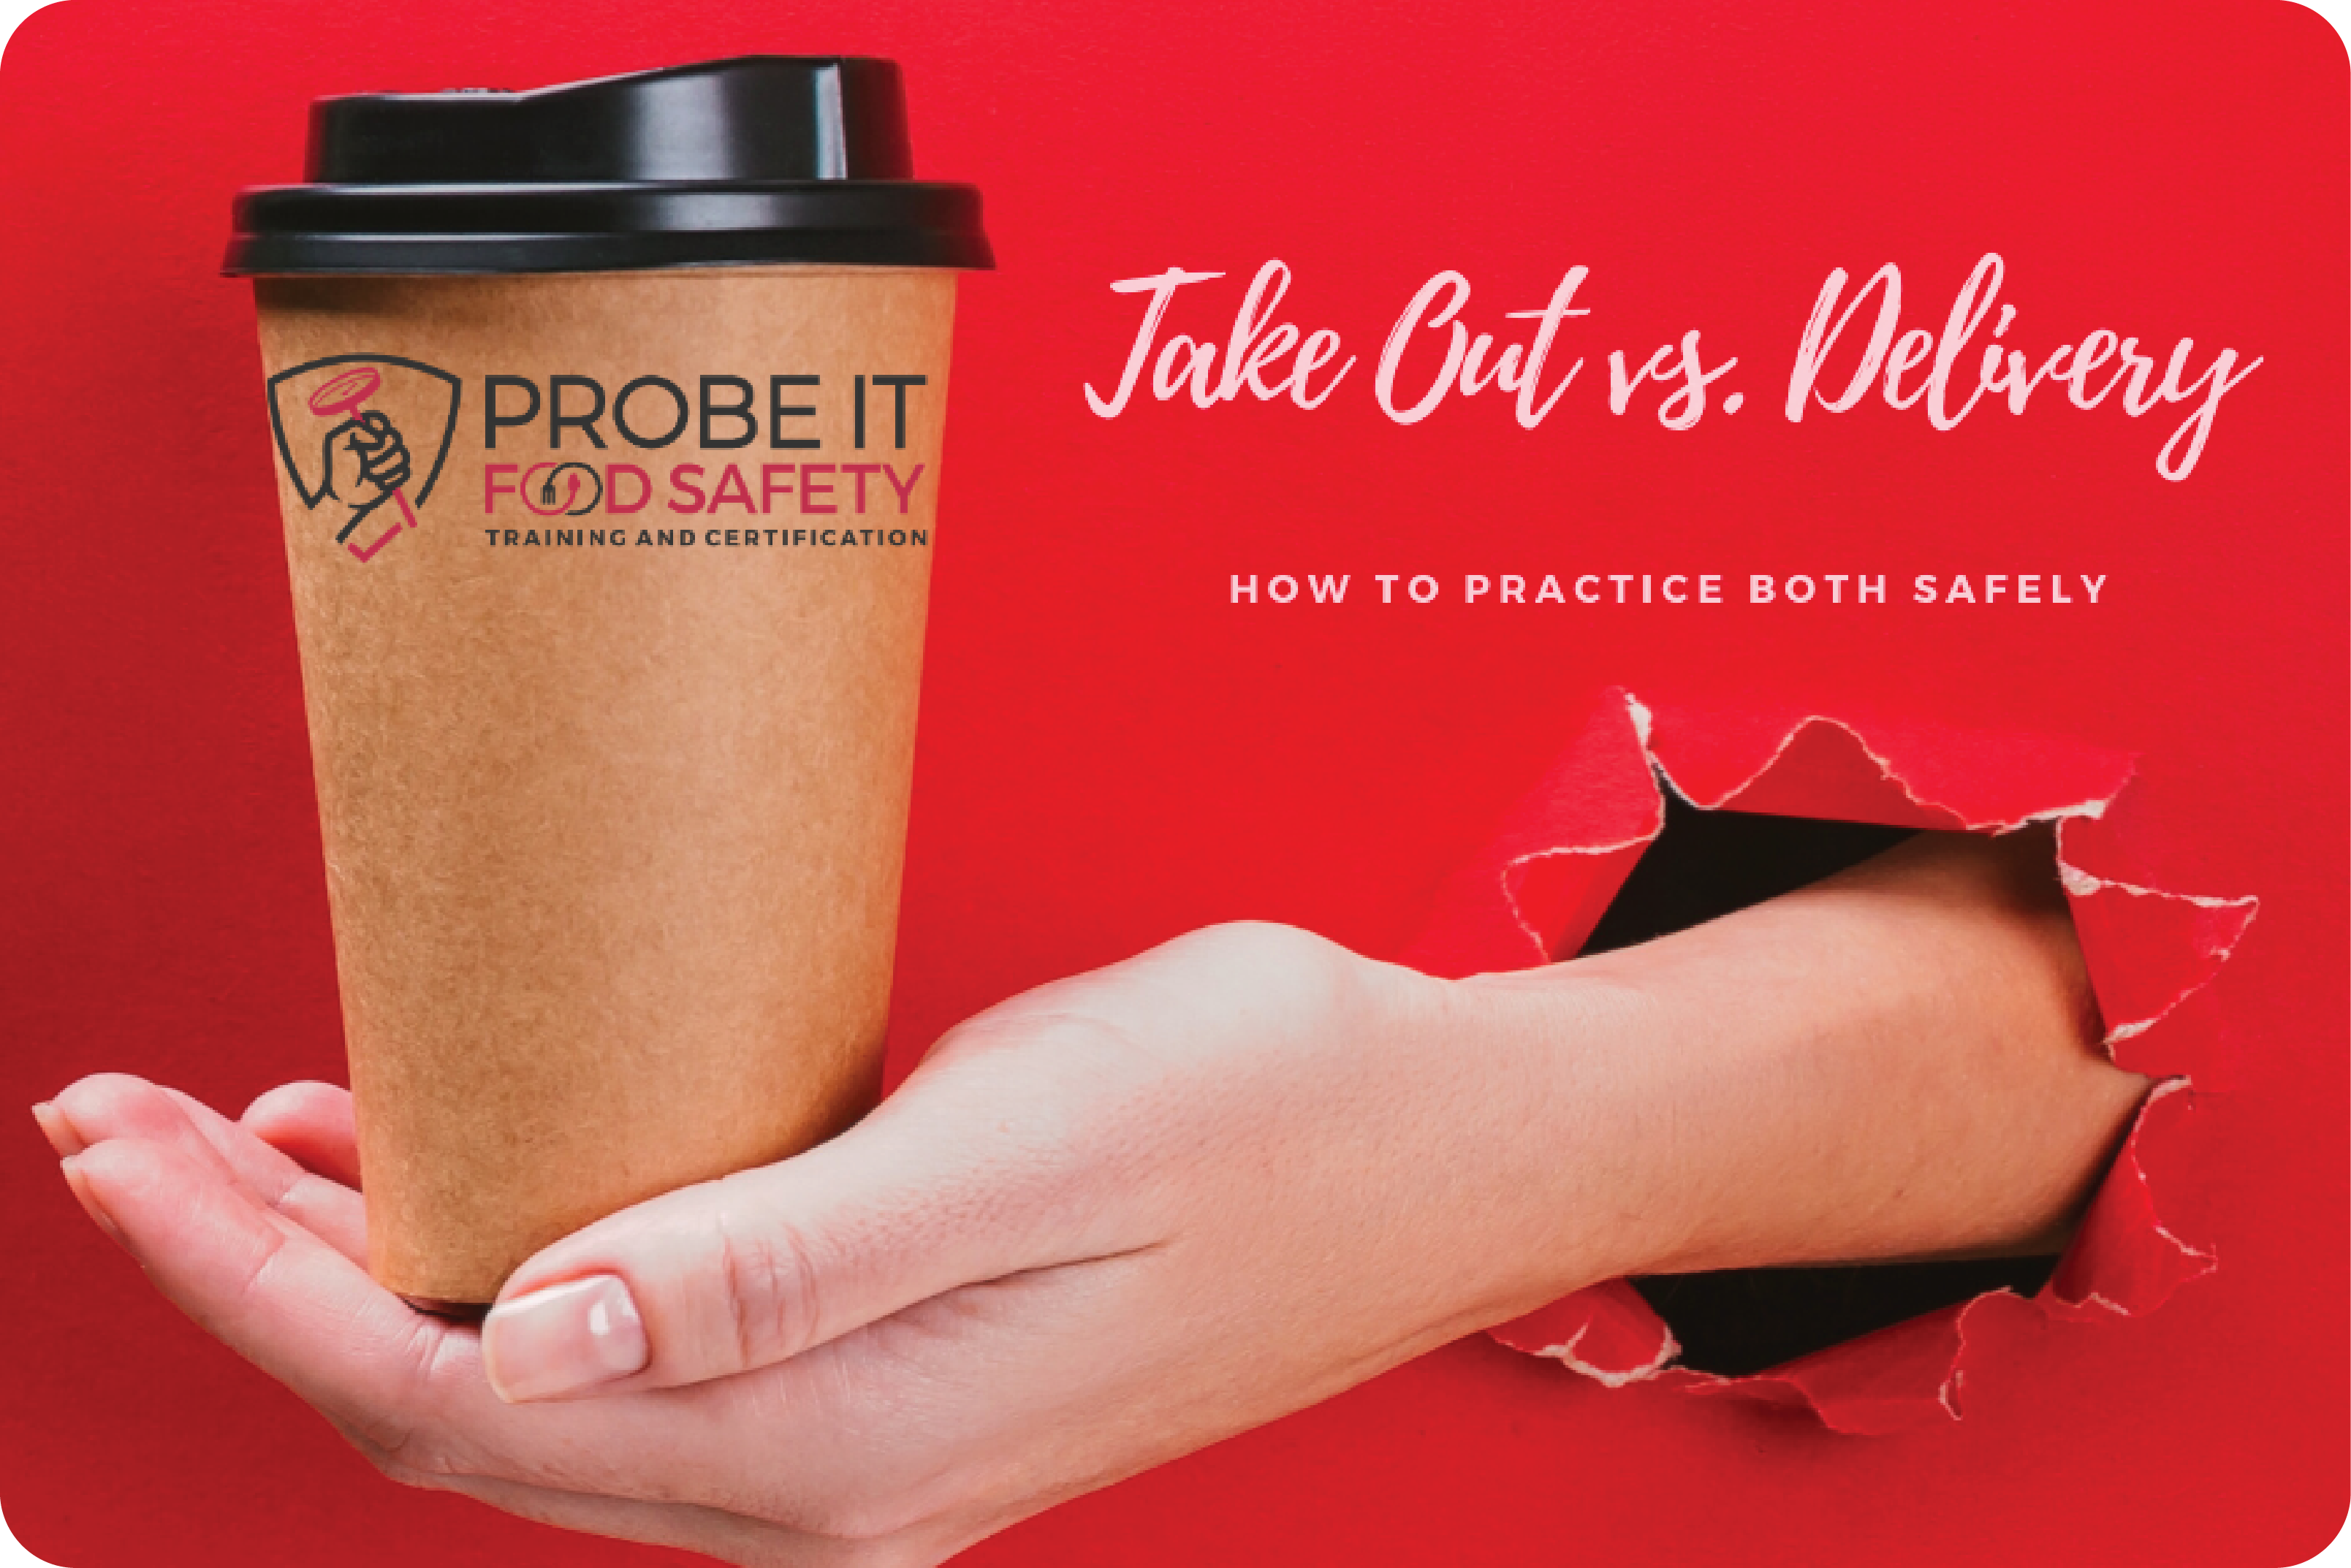 Take Out vs. Delivery – How To Practice Both Safely